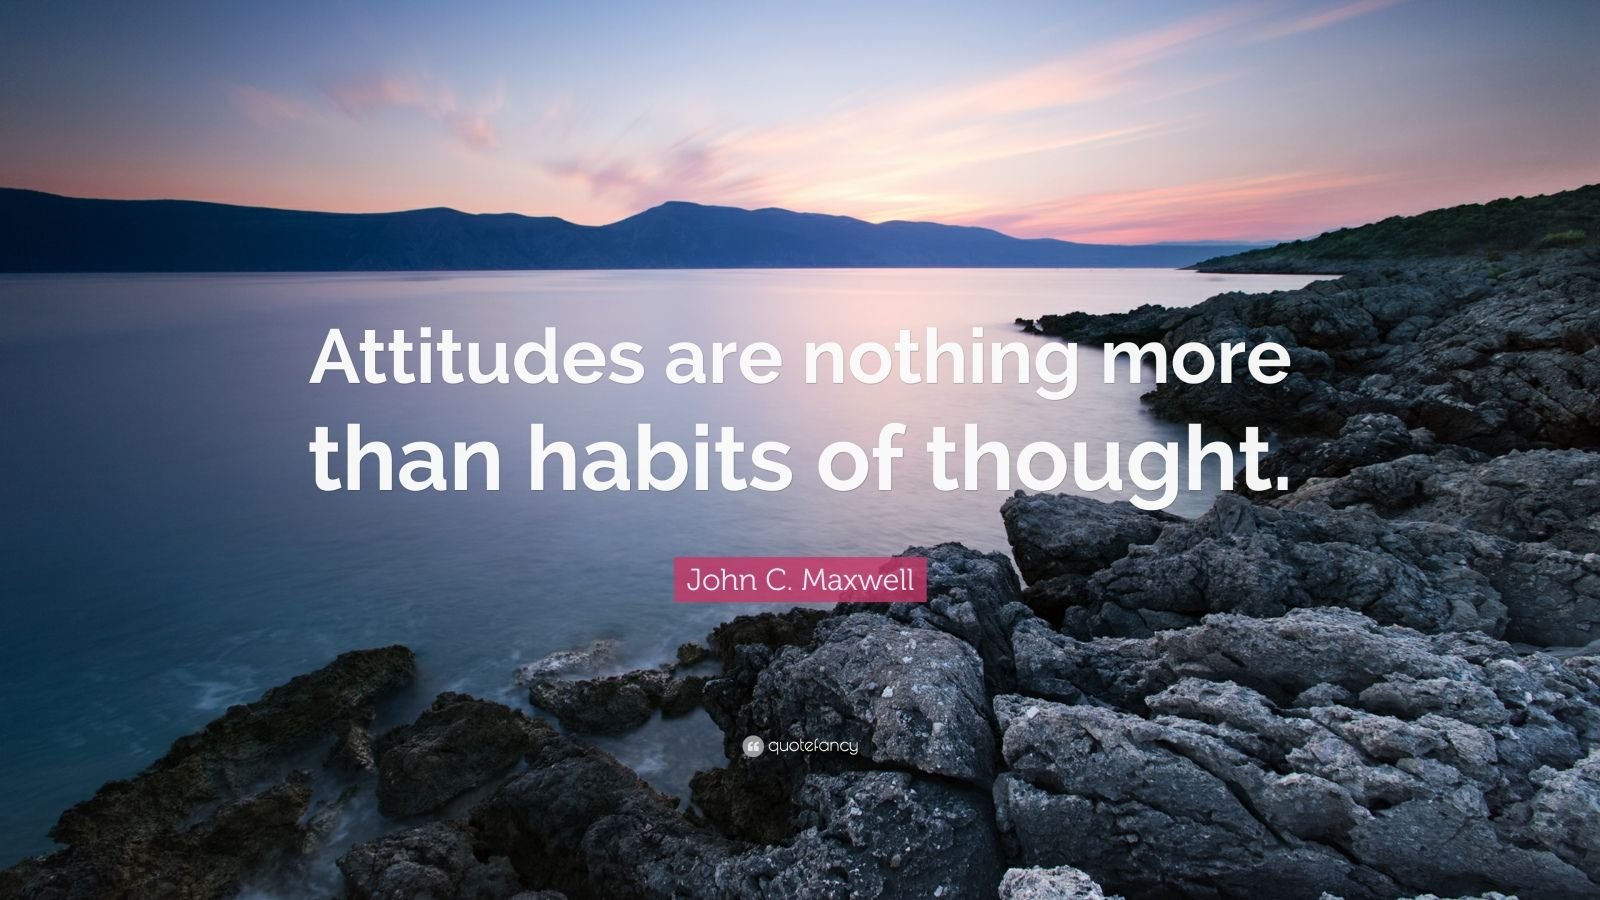 """John C. Maxwell Quote: """"Attitudes are nothing more than habits of thought."""""""